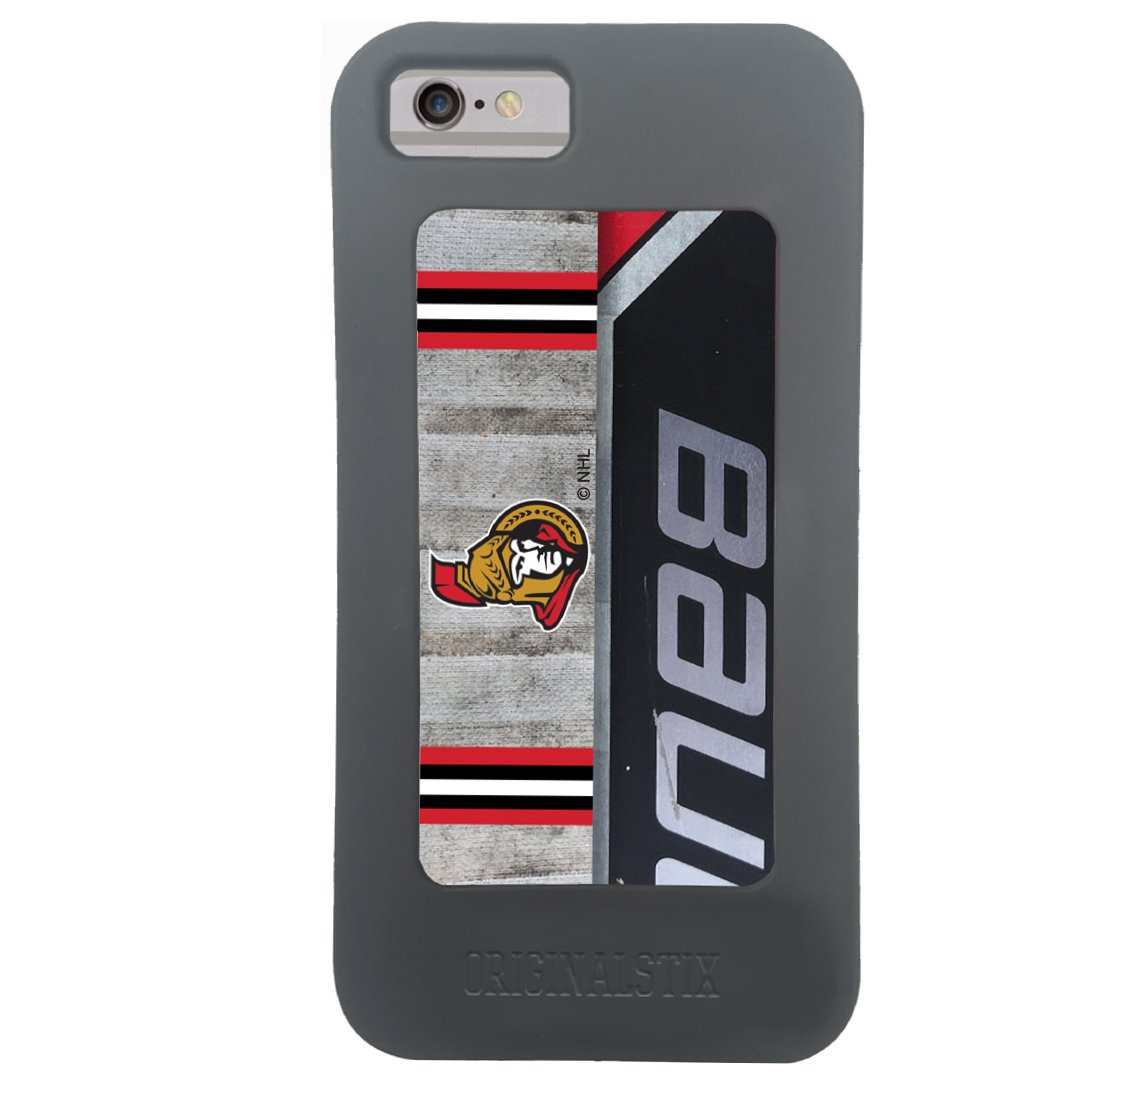 reputable site 91808 7622d NHL Ottawa Senators Unisex OS-NHL-Ott-Art-001-iph7Ottawa Senators Recycled  Hockey Stick iPhone 7 ...